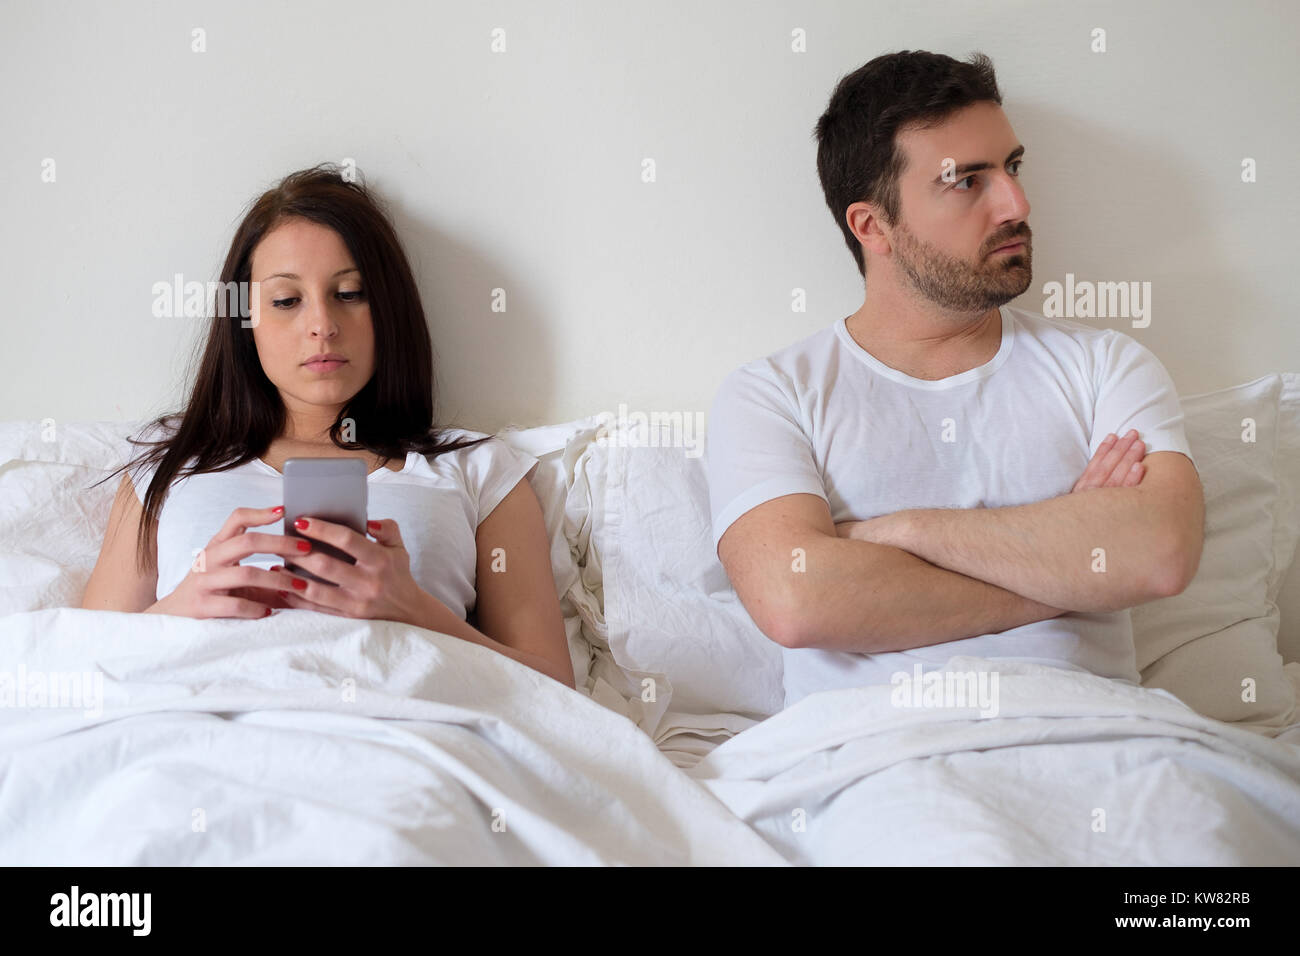 Bored couple and worried man by his wife smartphone addiction - Stock Image